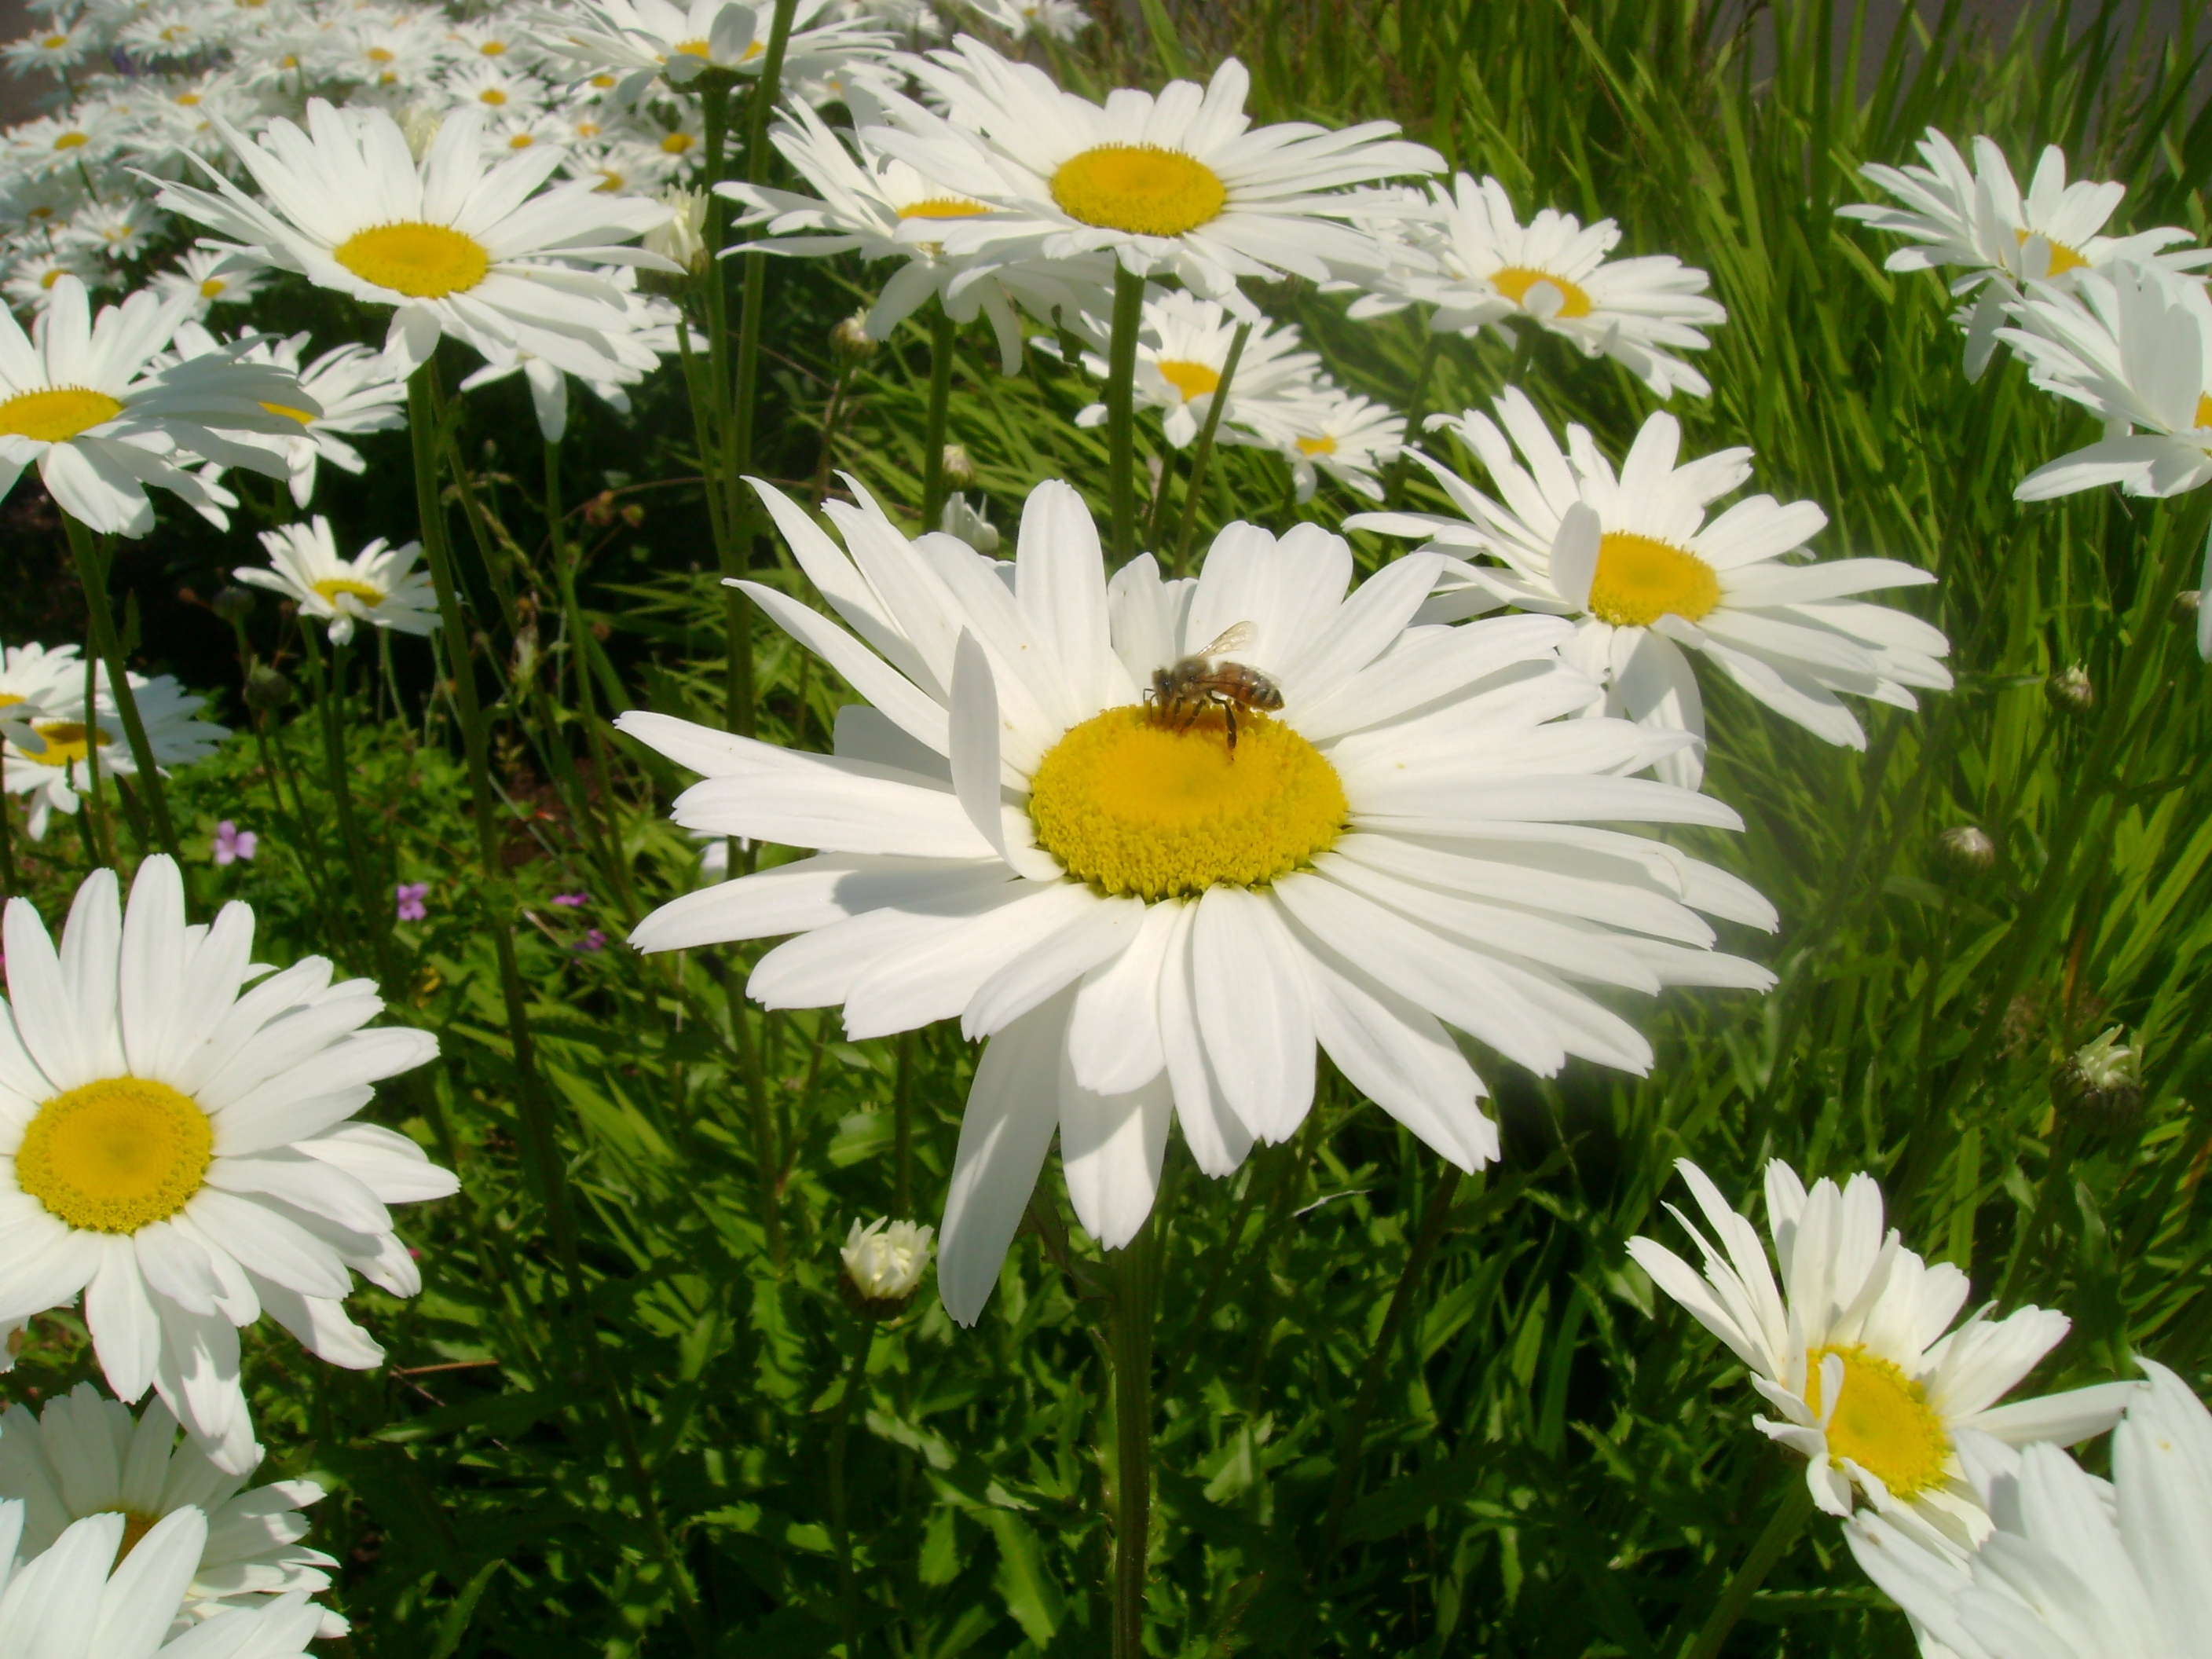 Daisy Wallpapers Images Photos Pictures Backgrounds HD Wallpapers Download Free Images Wallpaper [1000image.com]